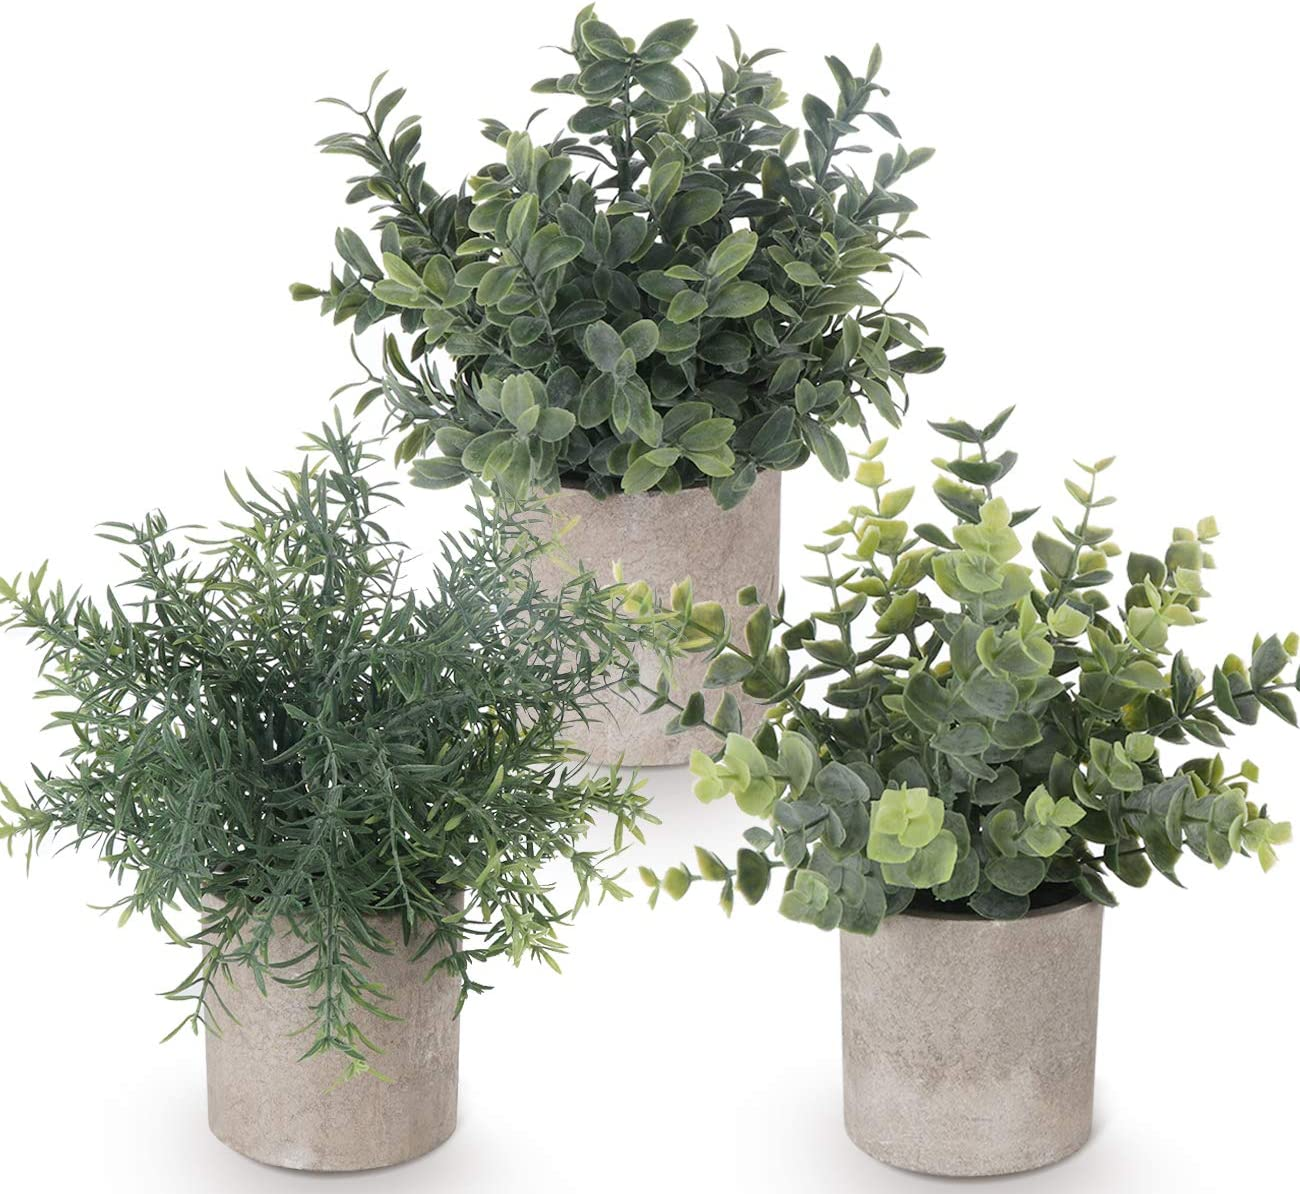 Lemonfilter Set of 3 Mini Potted Artificial Plants Plastic Eucalyptus Plants Faux Rosemary Plants for Home Garden Office Desk Shower Room Decoration